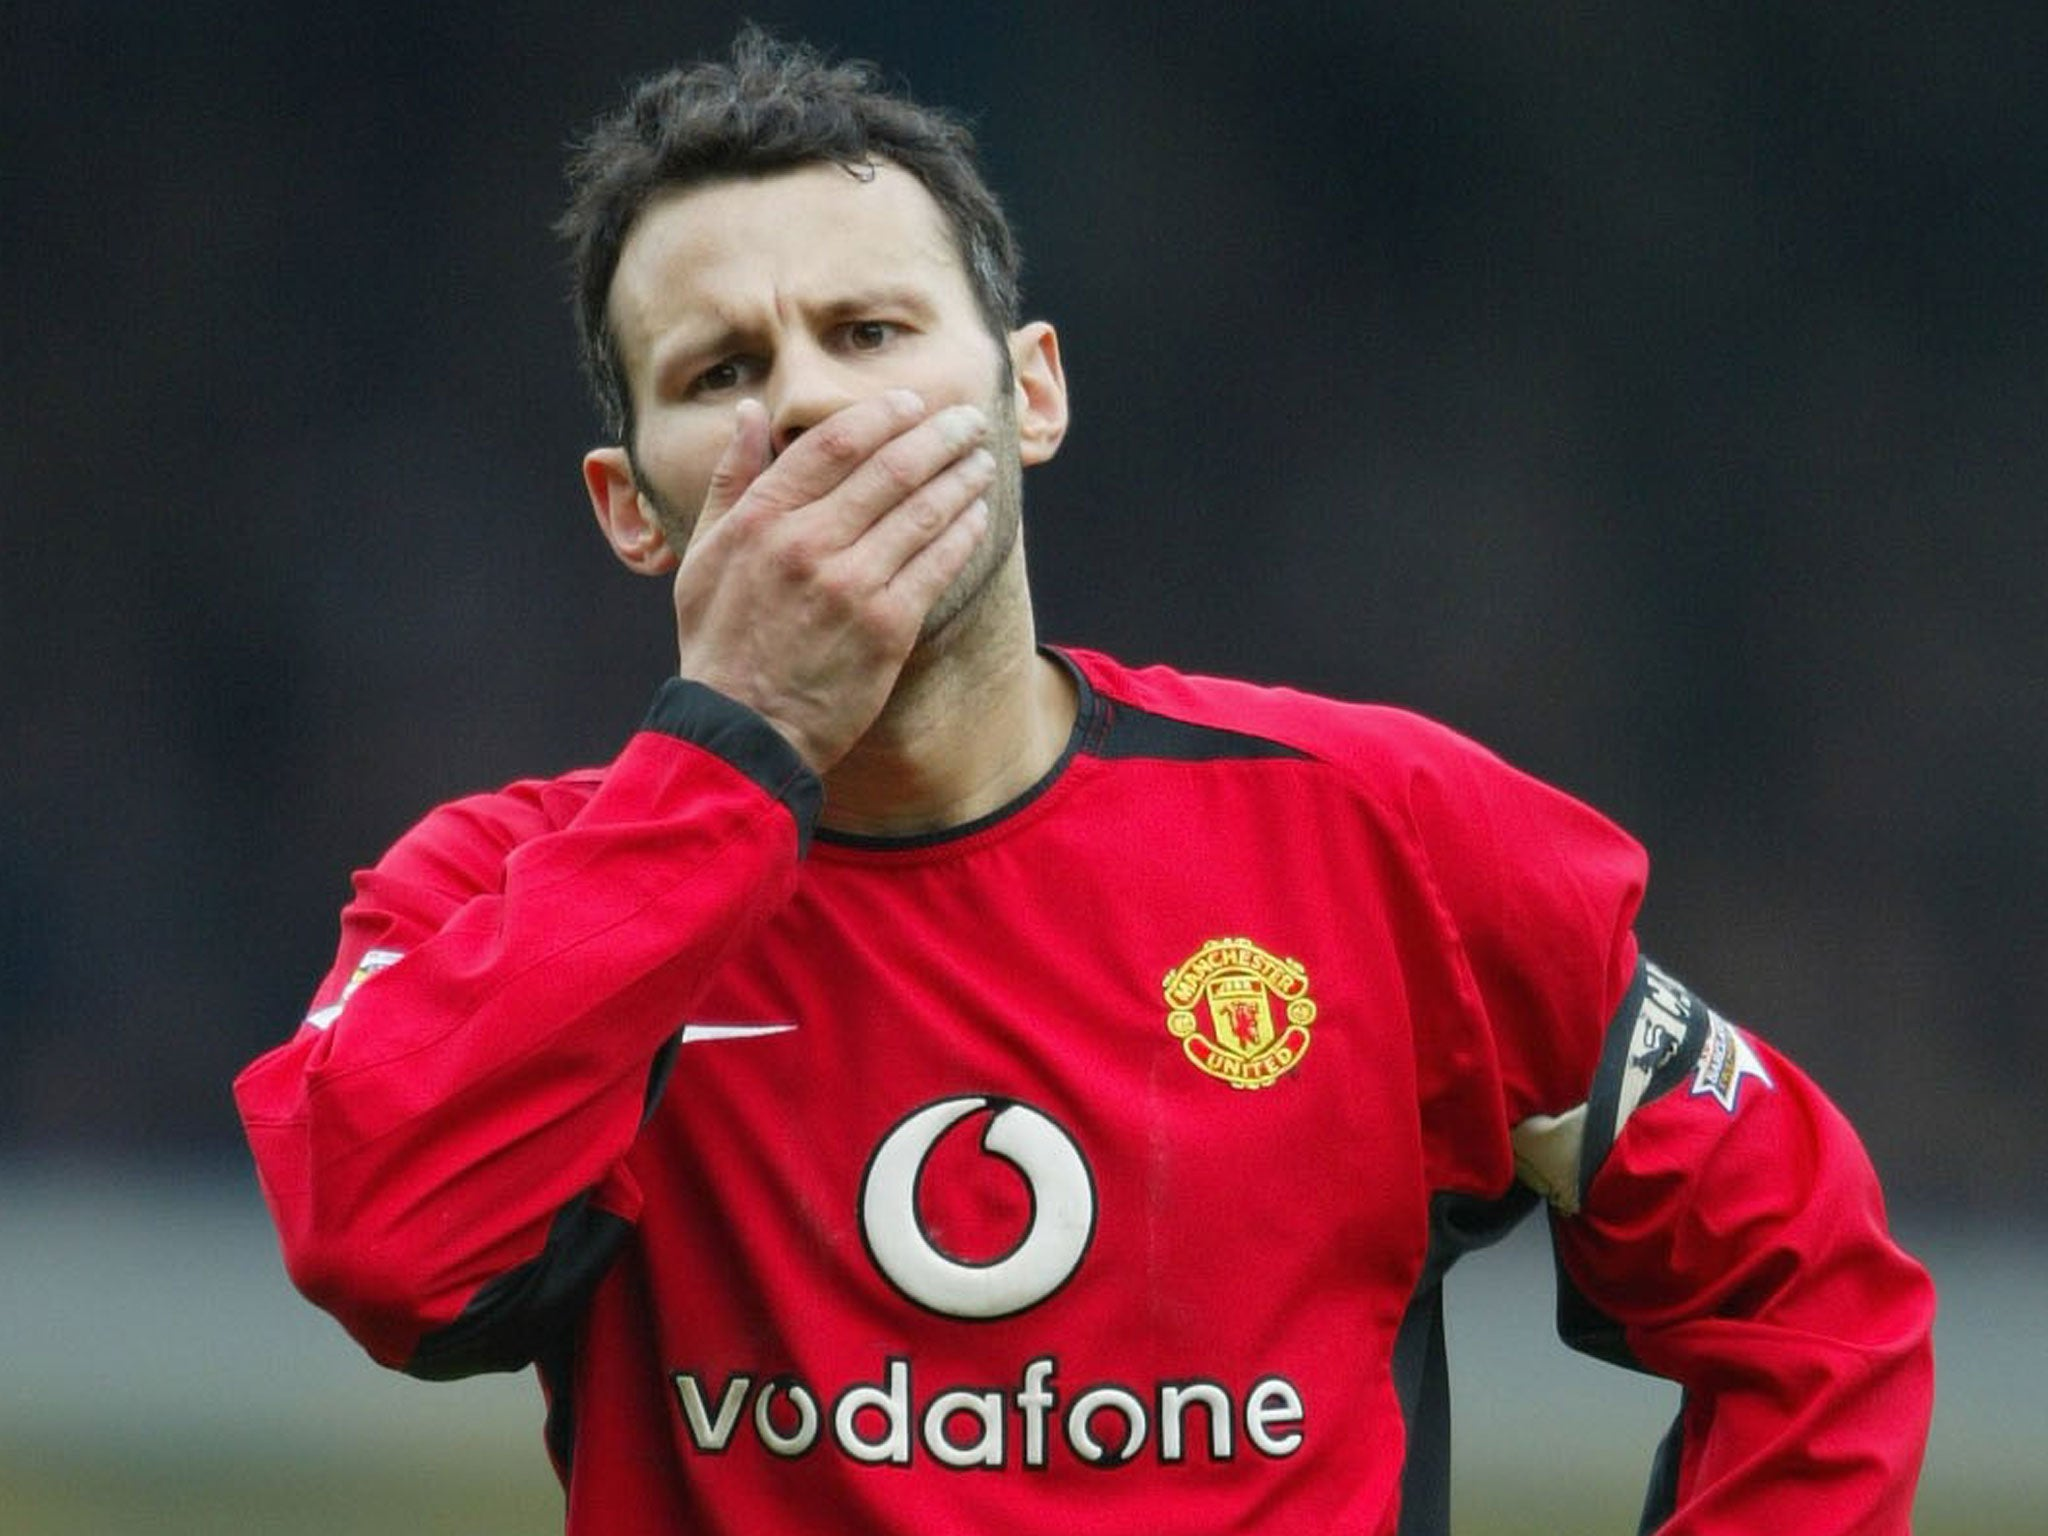 Kevin Garside: As good a player as he still is, Ryan Giggs